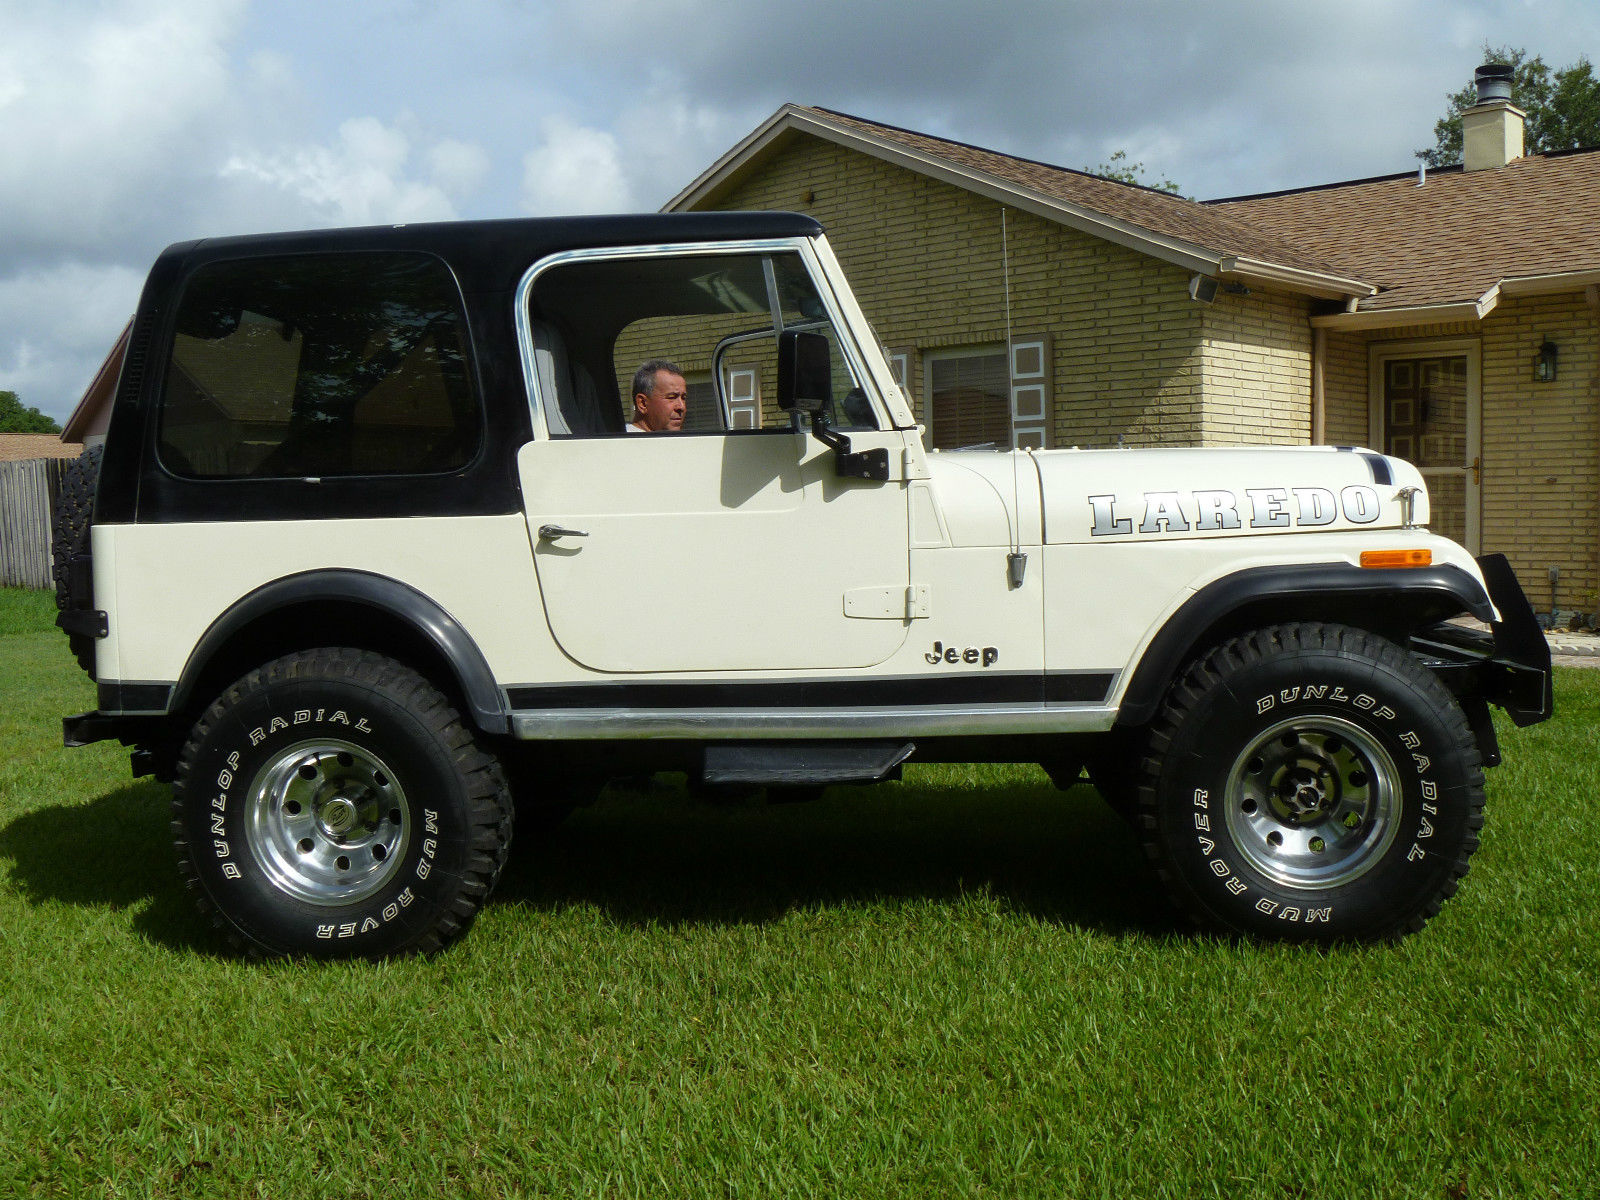 1981 Jeep Other & 1981 Jeep CJ7 Laredo Sport Utility 2-Door 4.2L - Classic Jeep Other ...